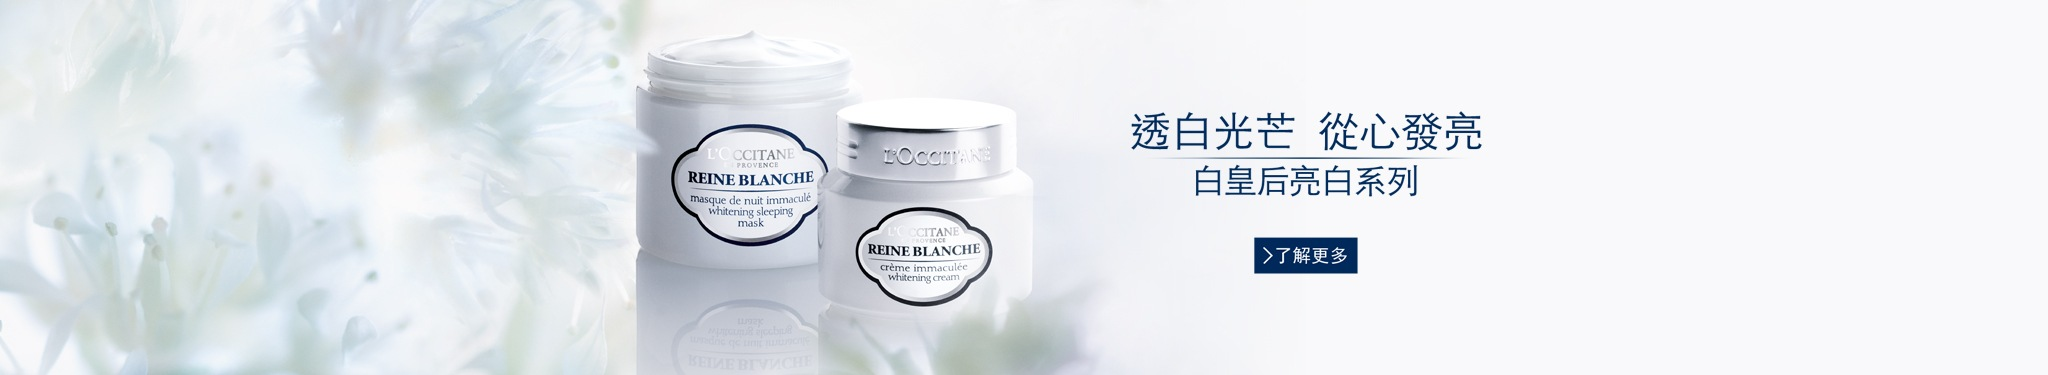 Reine Blanche Skincare Products